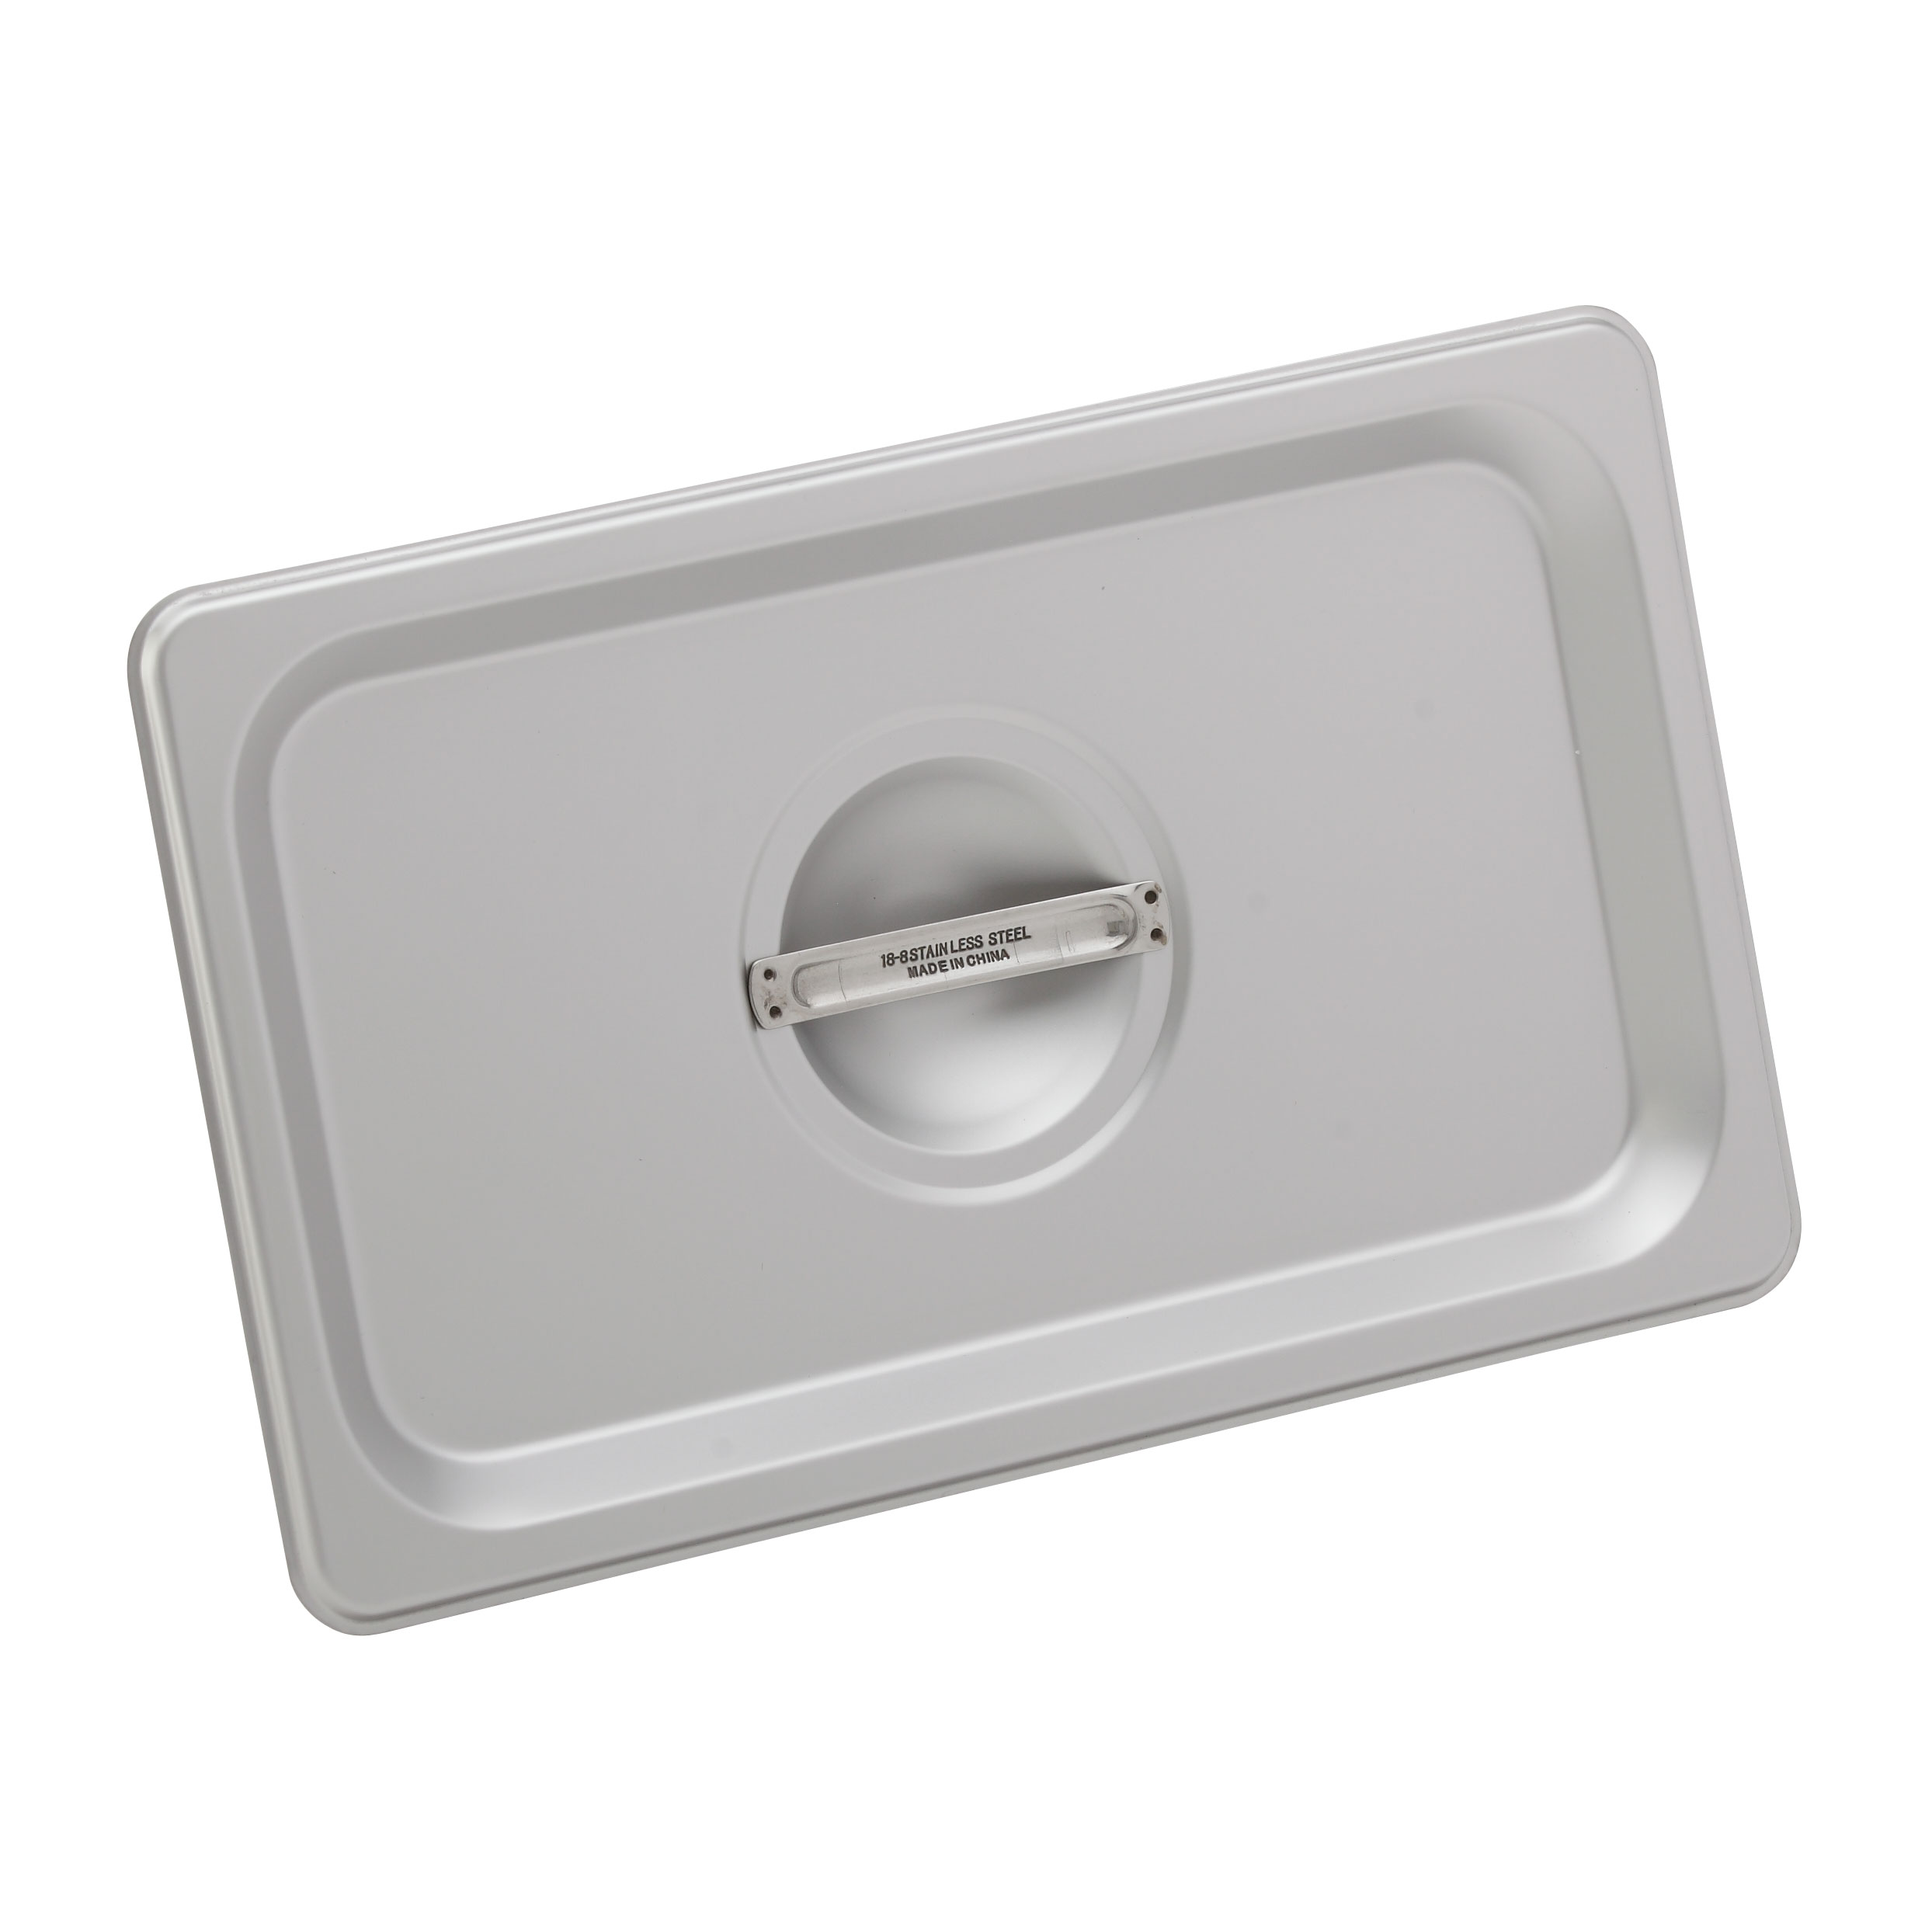 Royal Industries ROY STP 1300 1 steam table pan cover, stainless steel